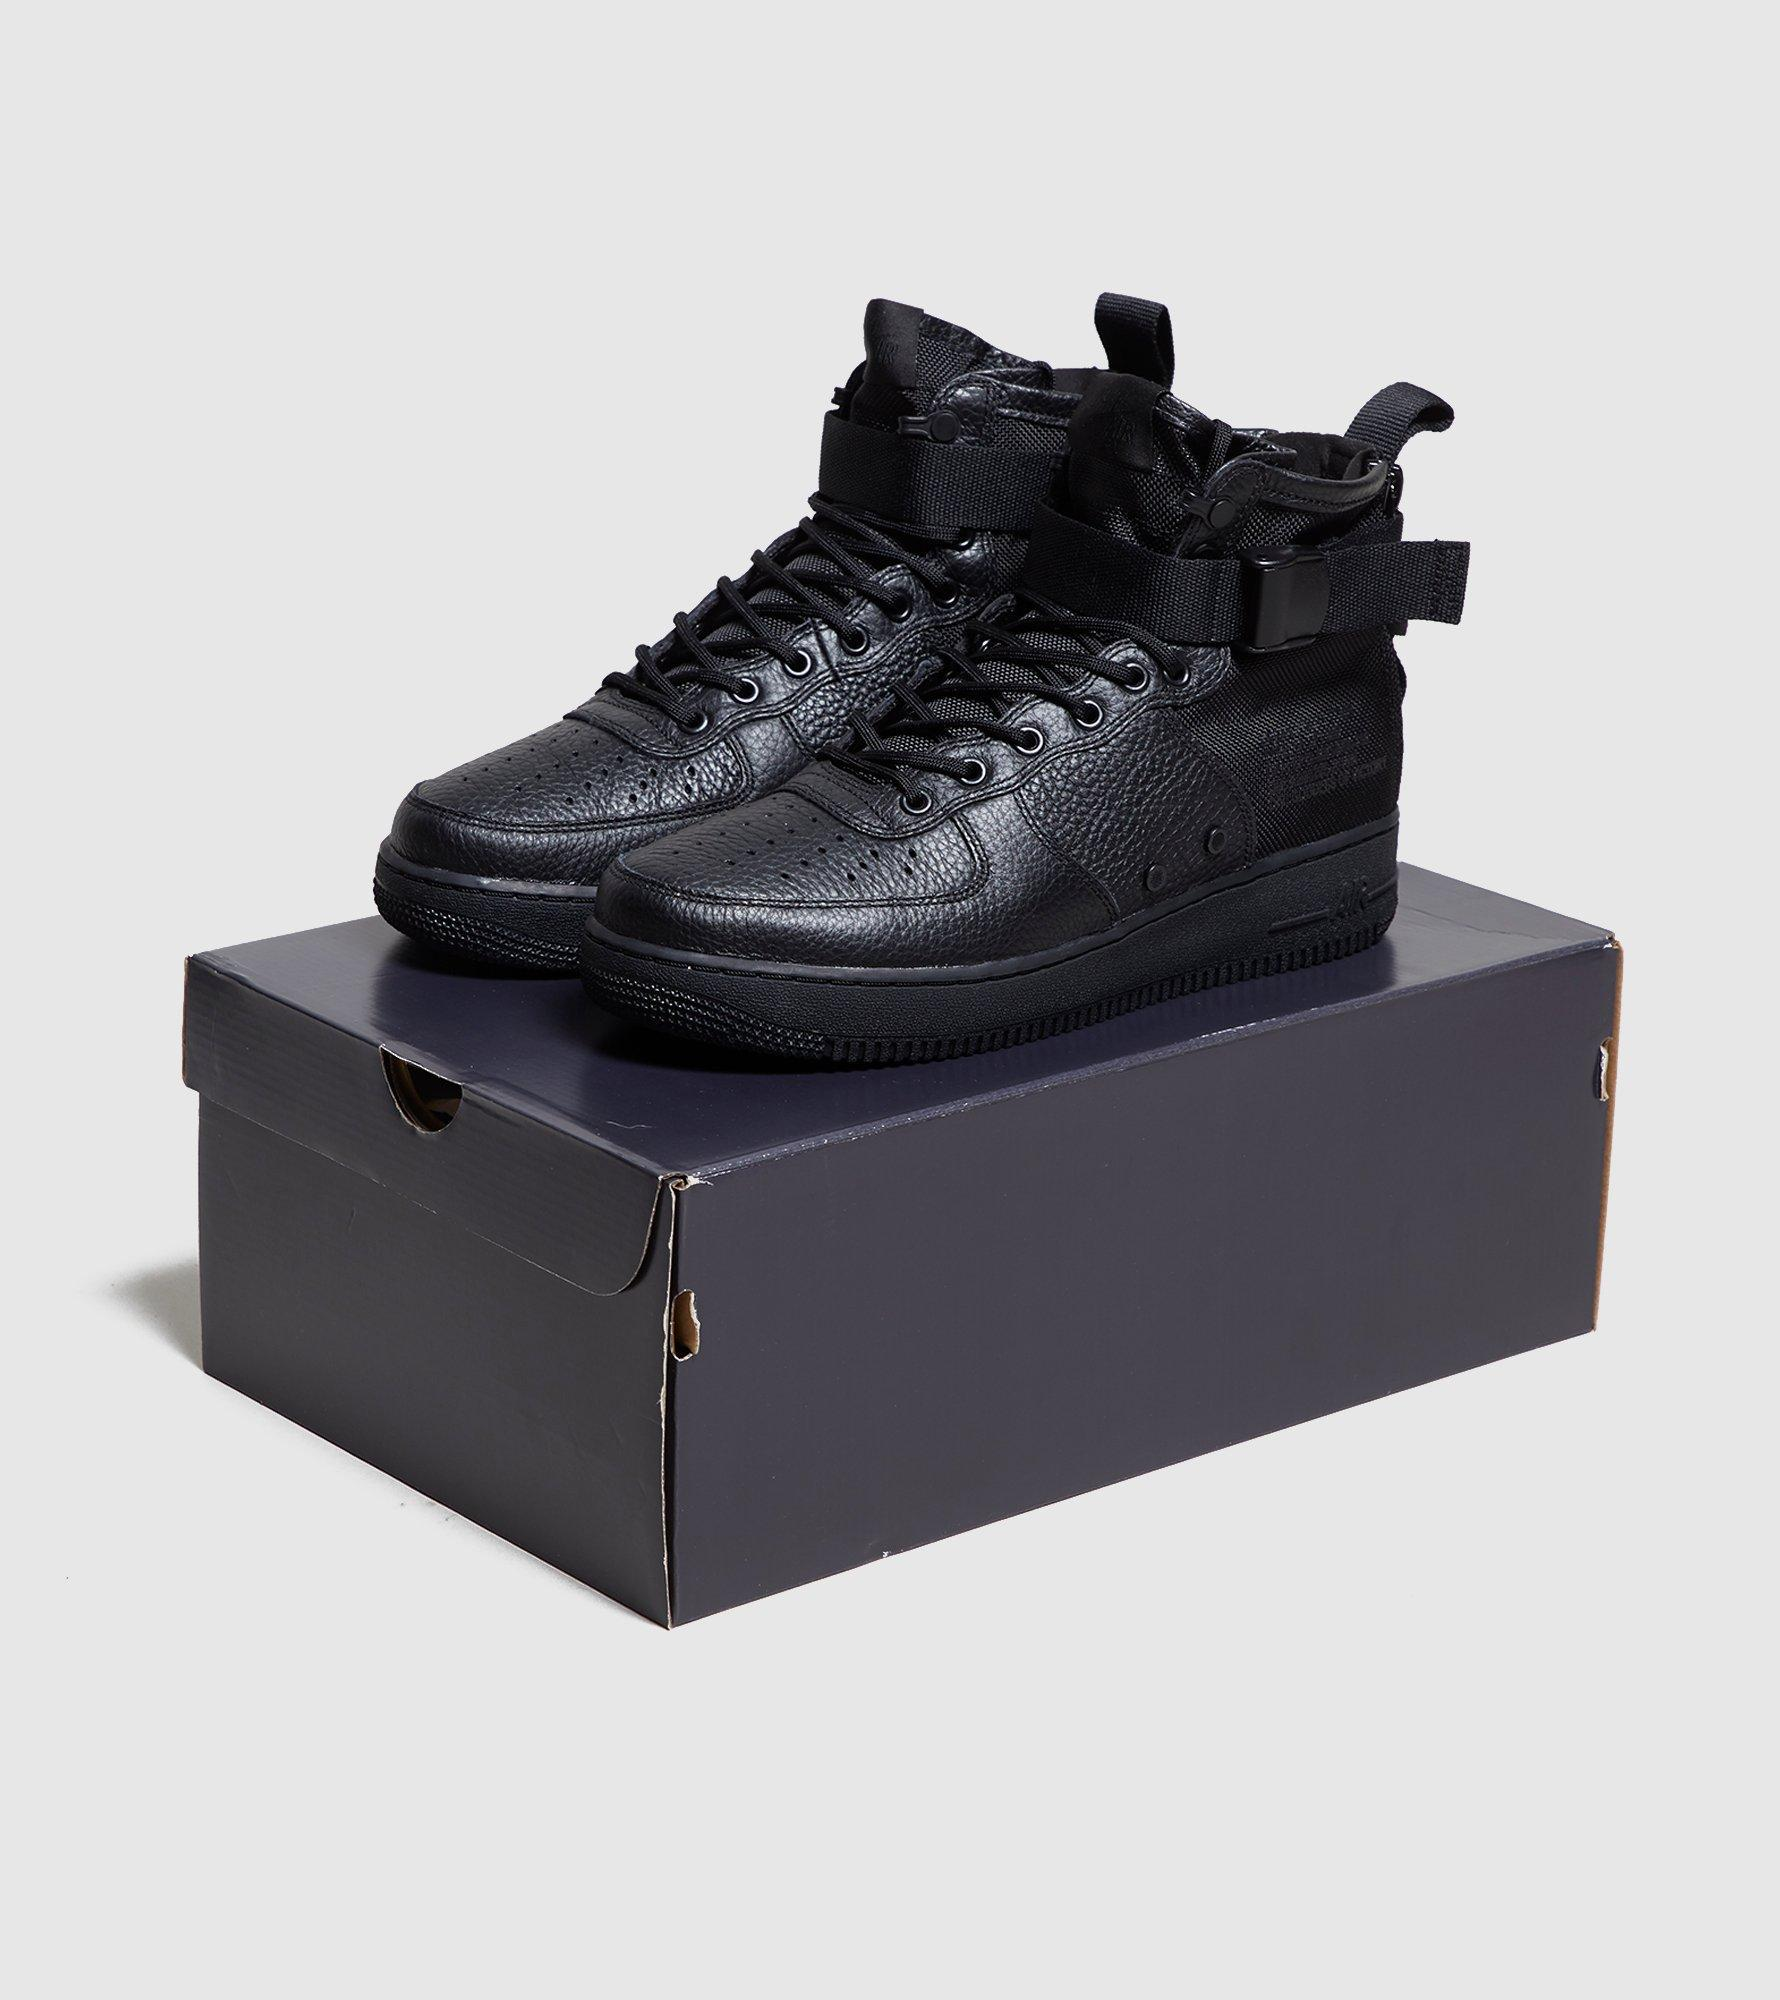 Nike Sf Air Force 1 Mid in Black for Men - Lyst 6aa15b172